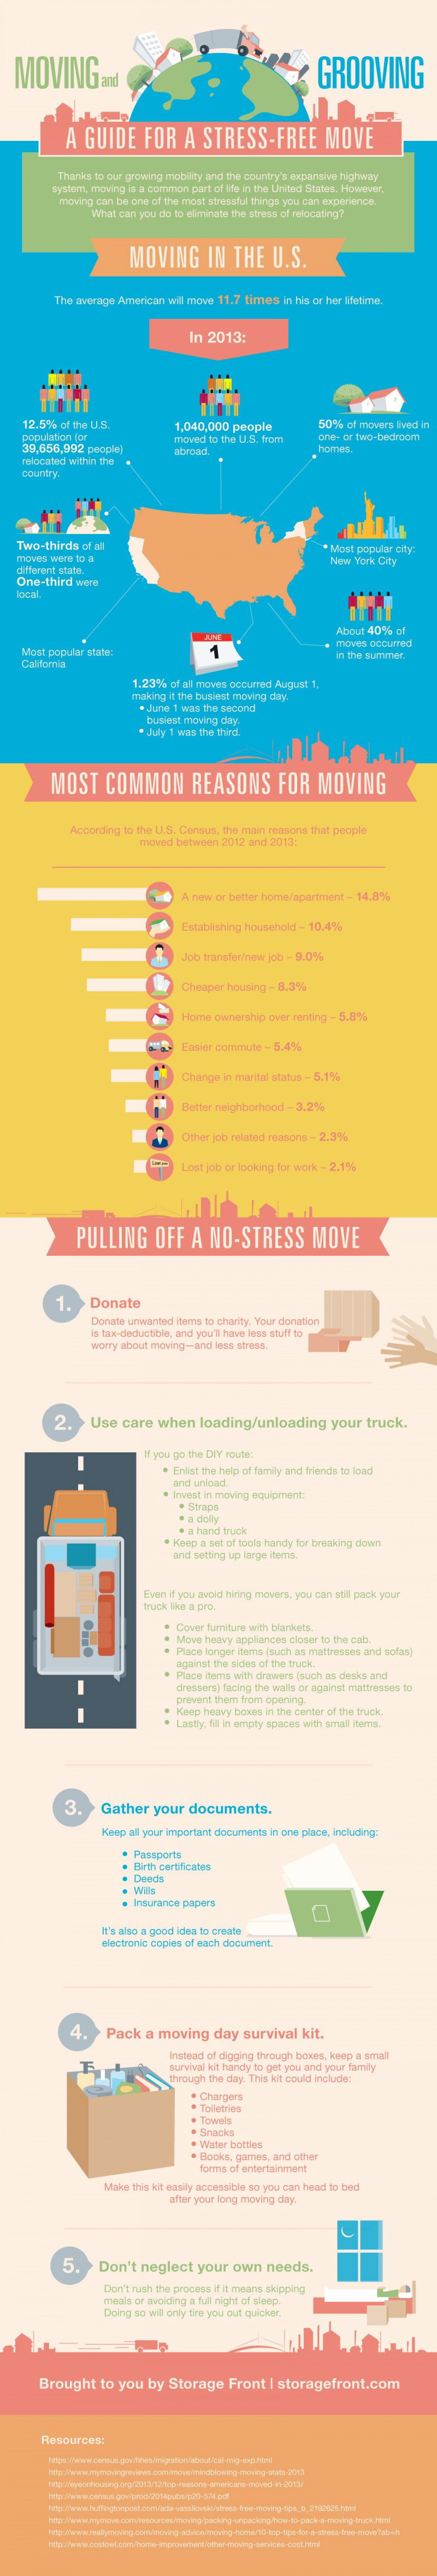 Moving and Grooving: A Guide for a Stress-free Move Infographic